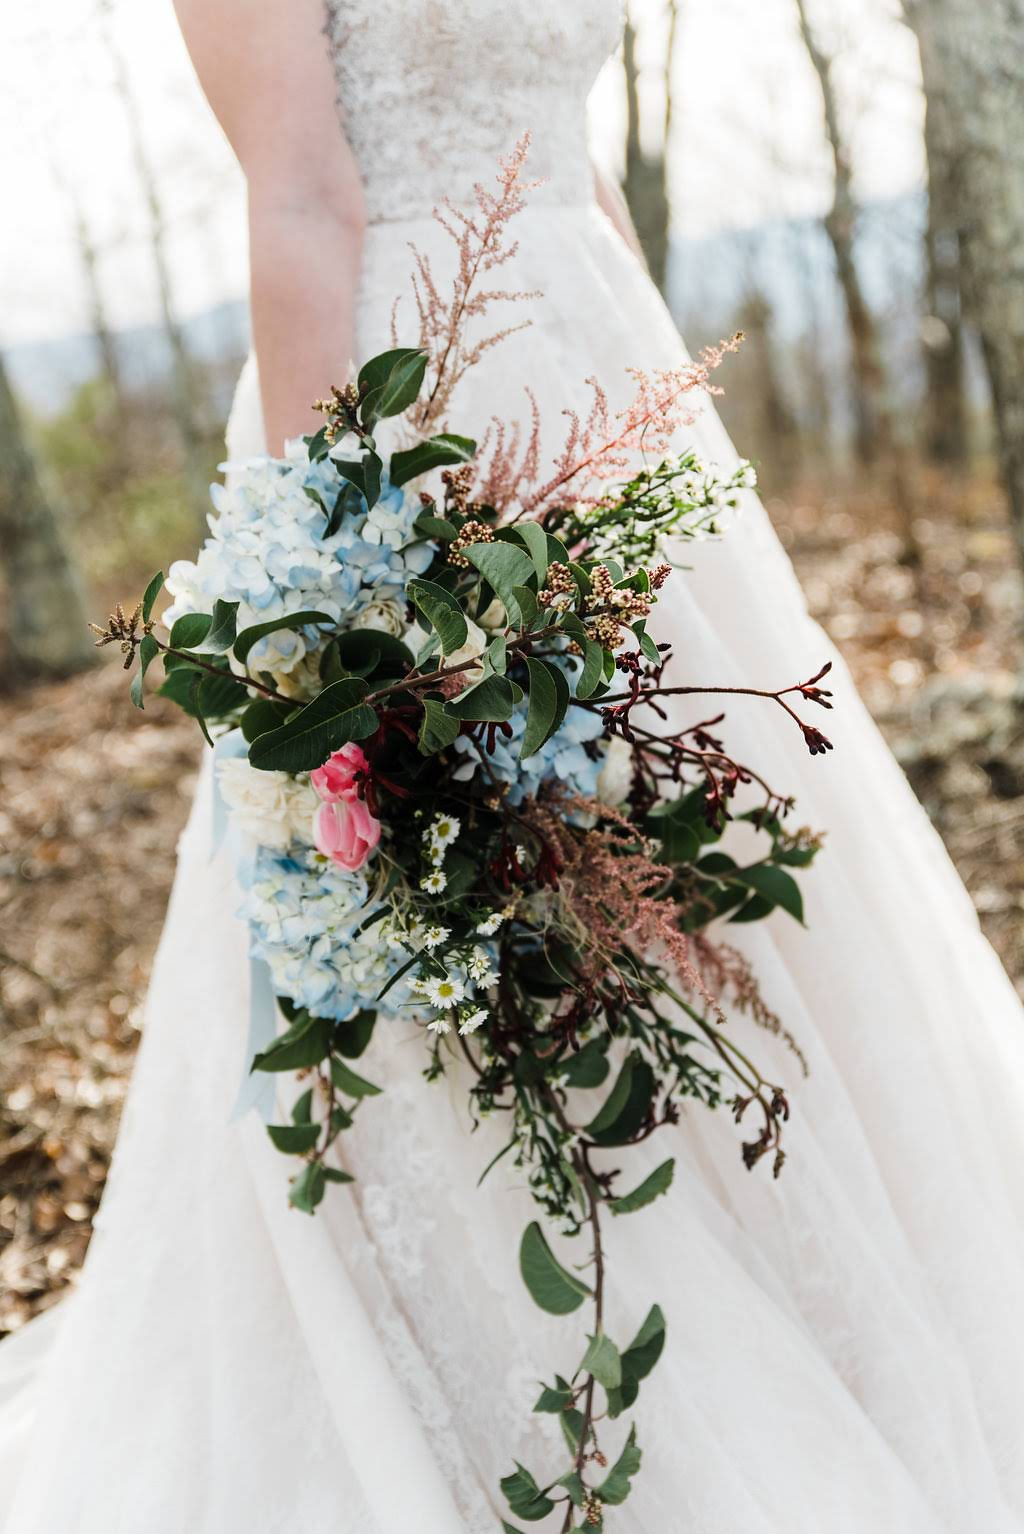 MountainStyledShoot_PearlEvents_50.jpg